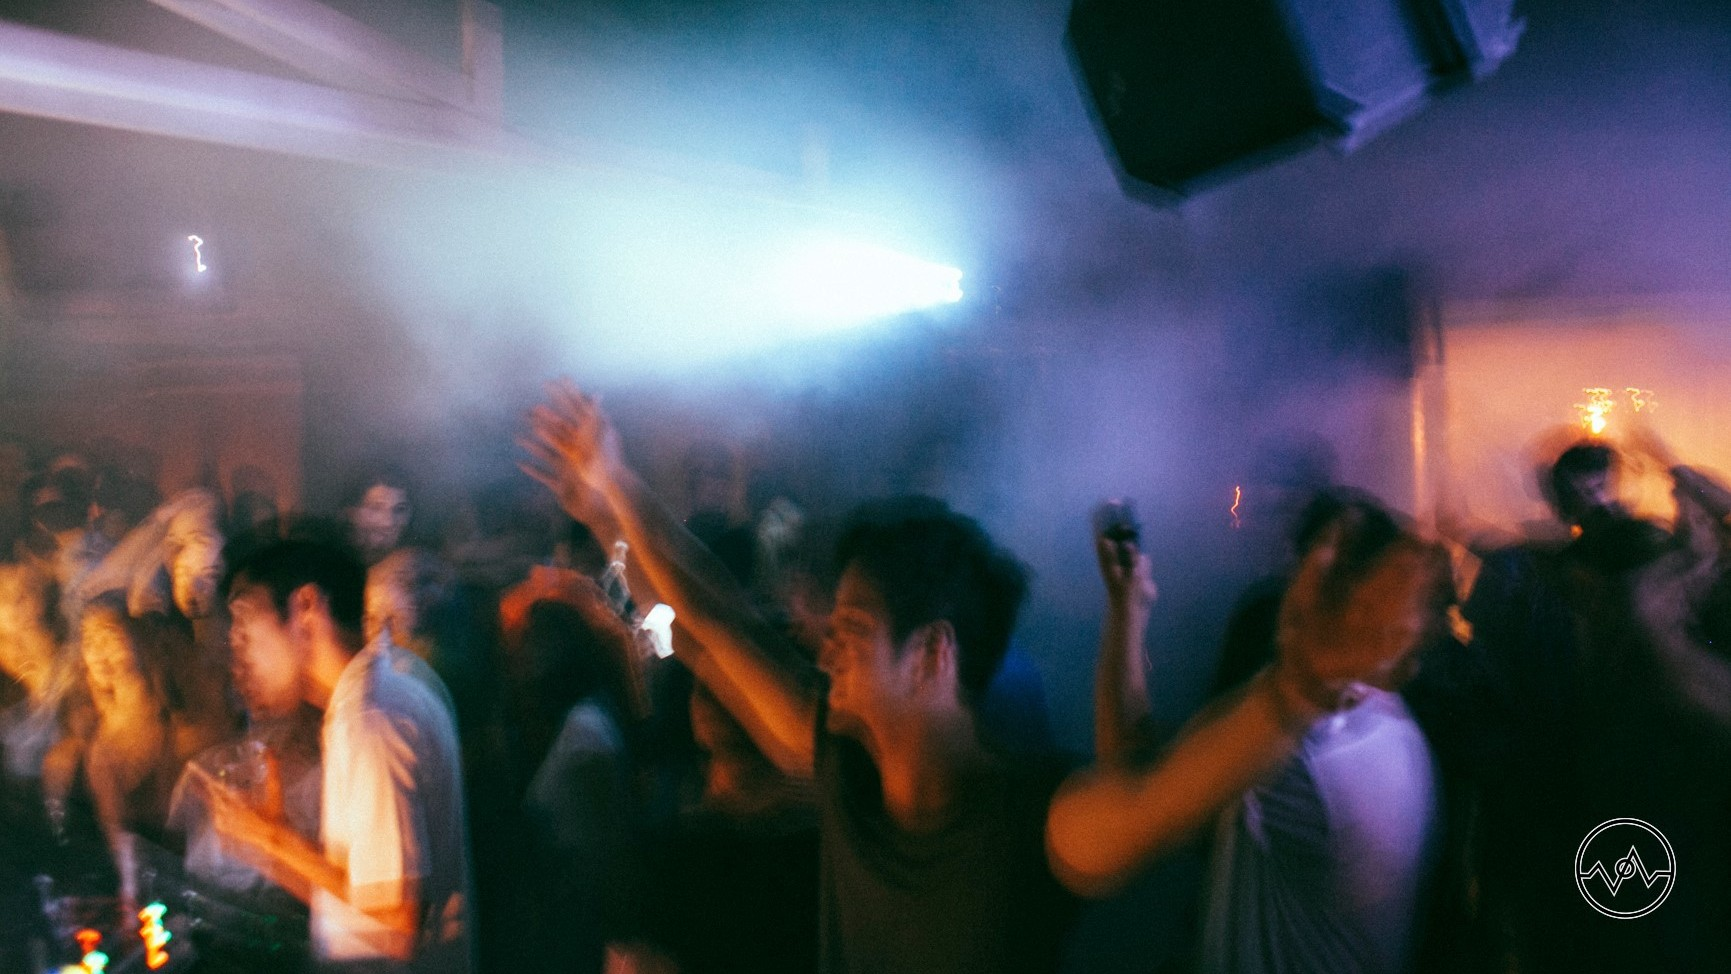 Techno Parties Are Up Against Political Corruption in Vietnam's Music Scene